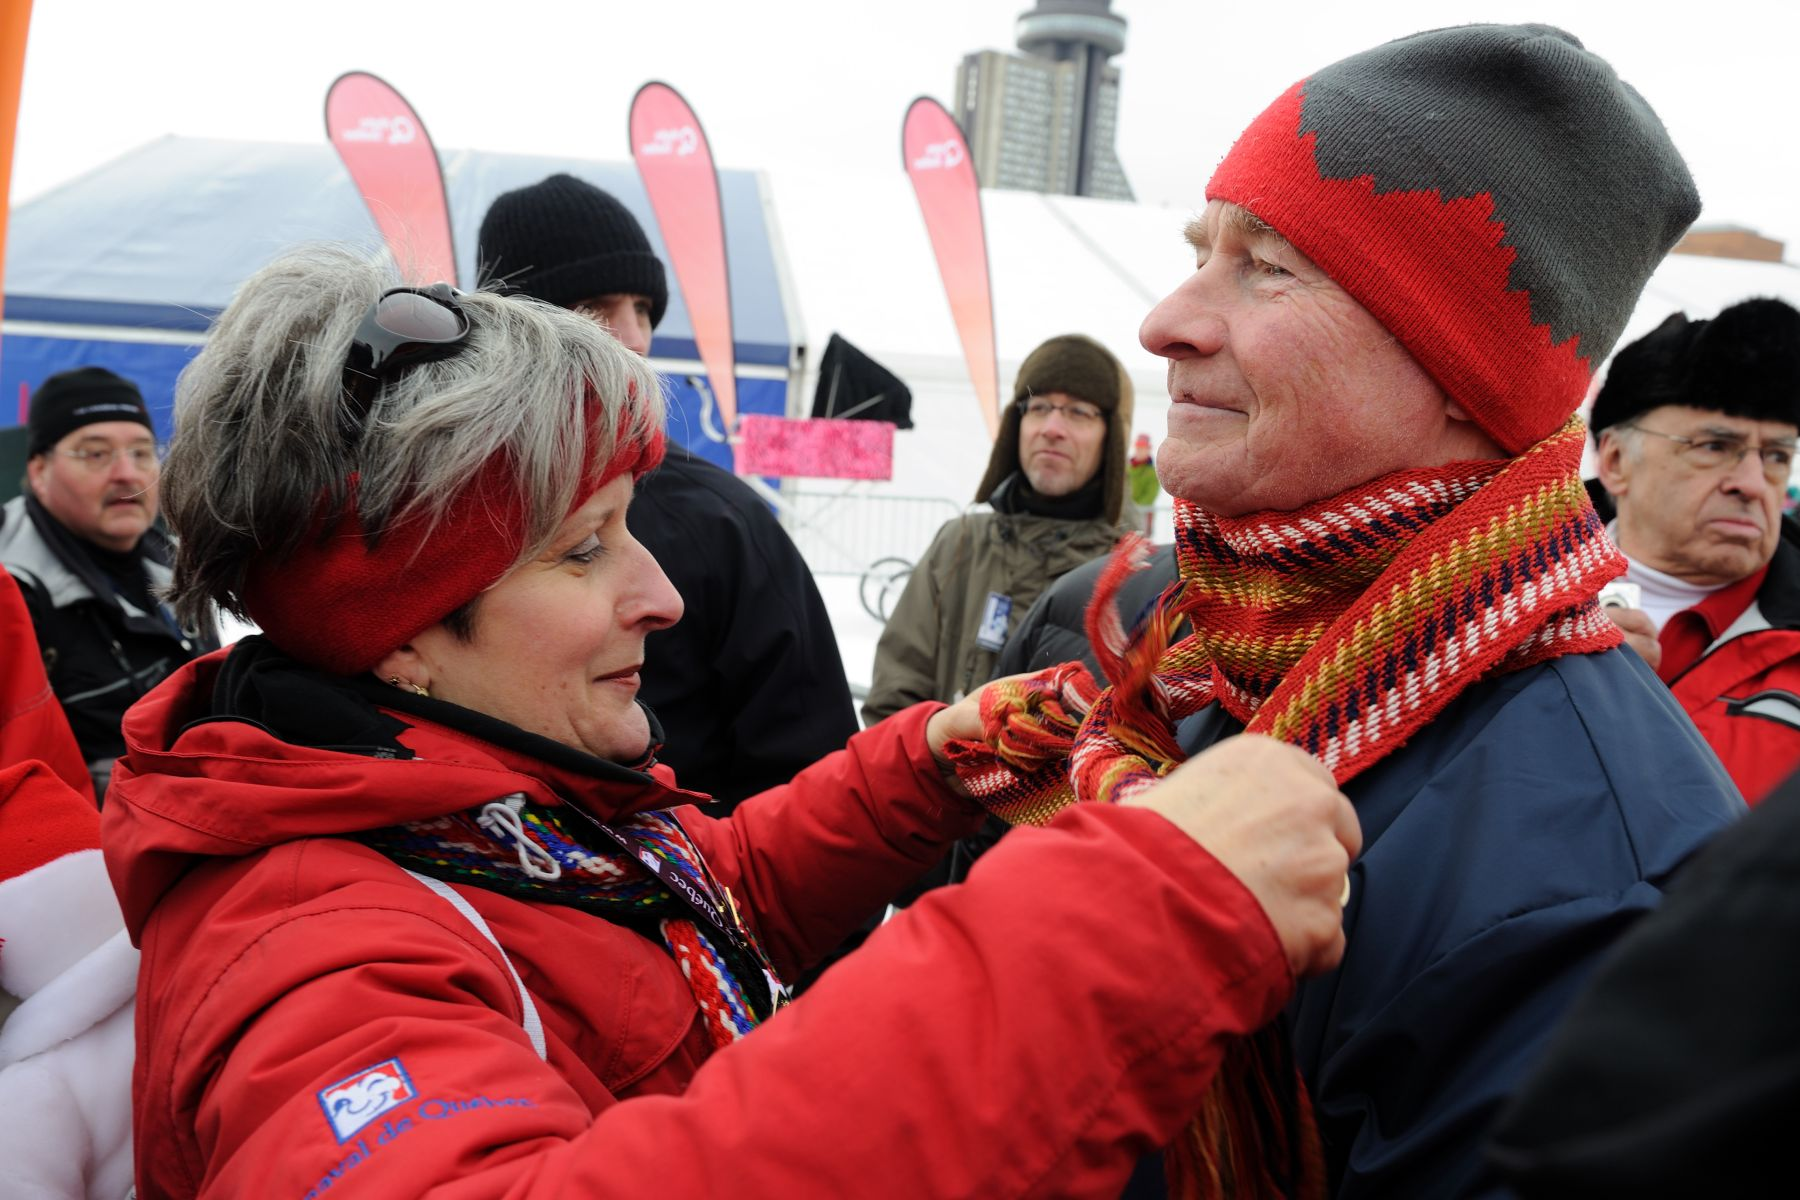 Gisèle Gourdeau from the Québec Winter Carnival gave the festival's famous scarf to His Excellency.